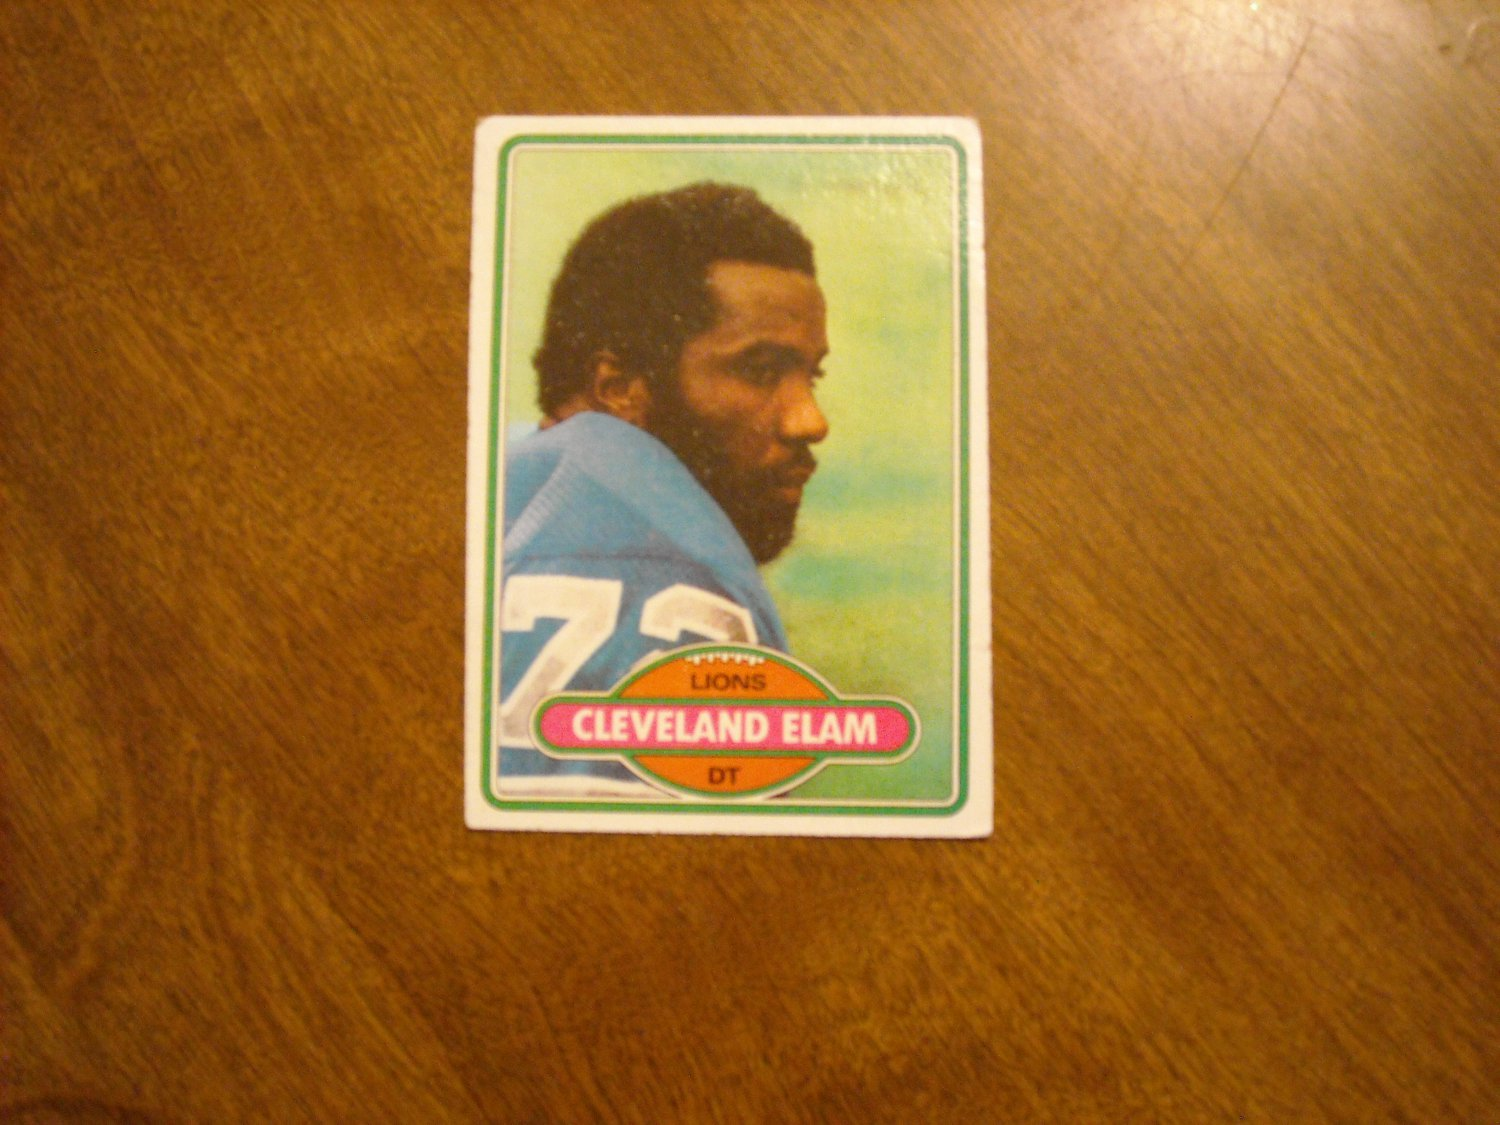 Cleveland Elam Detroit Lions DT Card No. 27 - 1980 Topps Football Card